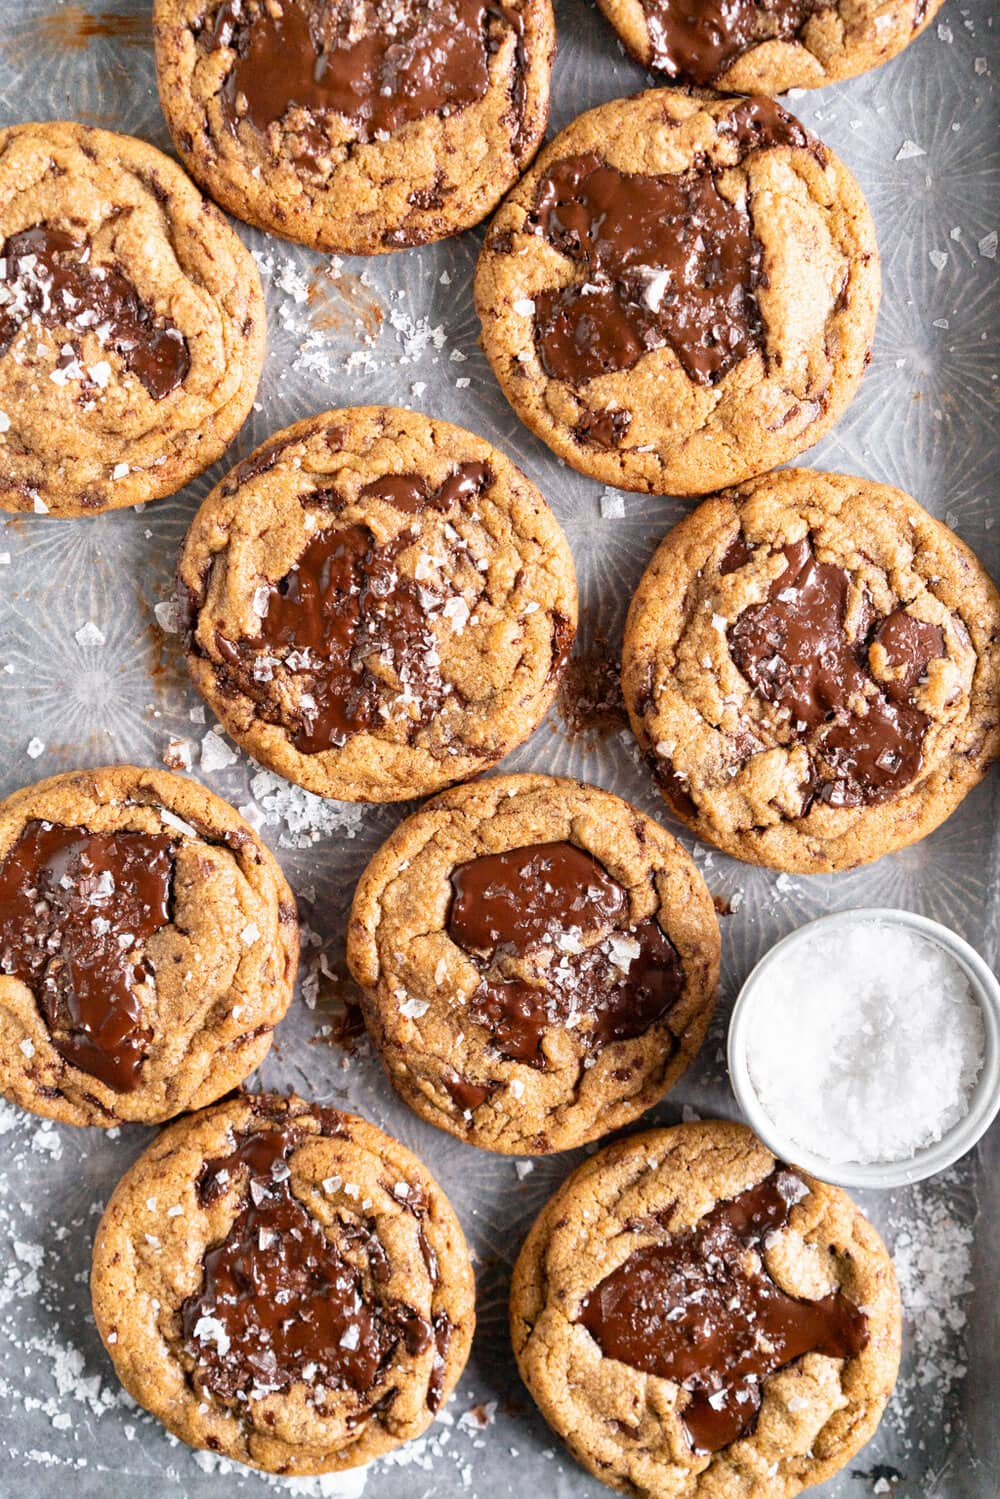 The Perfect Chocolate Chip cookie - lightly salted dough surrounds puddles of dark chocolate, before being finished up with a heavy dose of flaky sea salt. These cookies utilise three different types of sugar - white, dark brown or muscovado, and turbinado sugar for a little crunch. They are easy to make and I show you how to get the best chocolate puddles in the recipe!